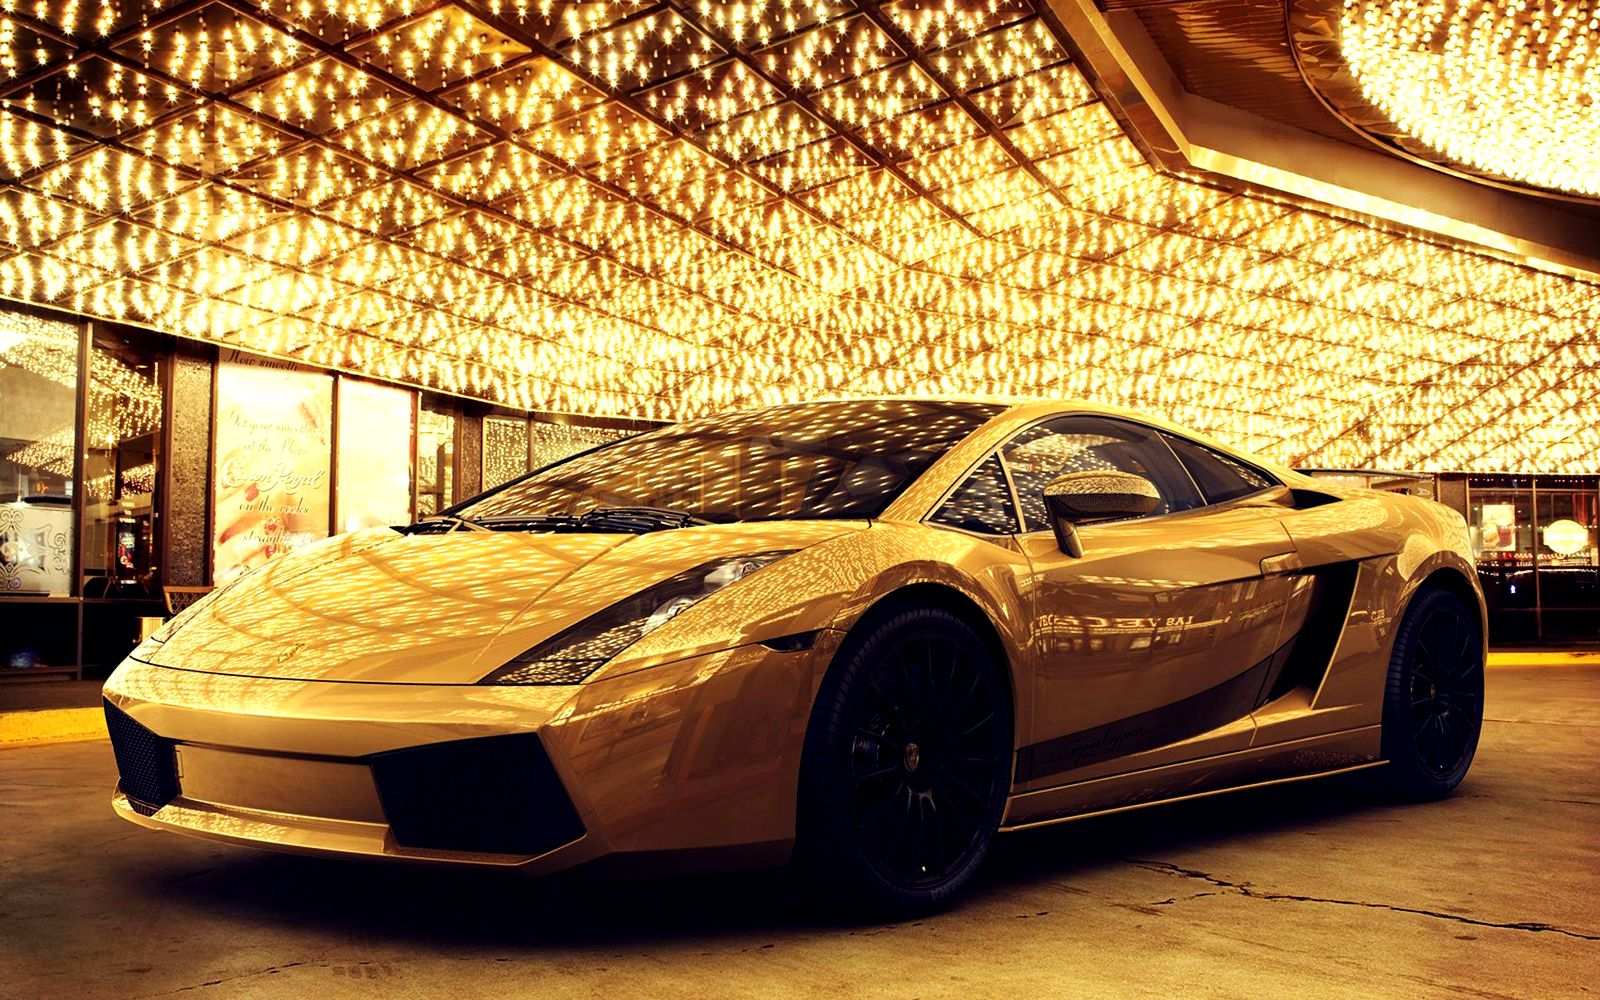 Gold Car Wallpapers: Golden Lamborghini Gallardo Luxery Car HD